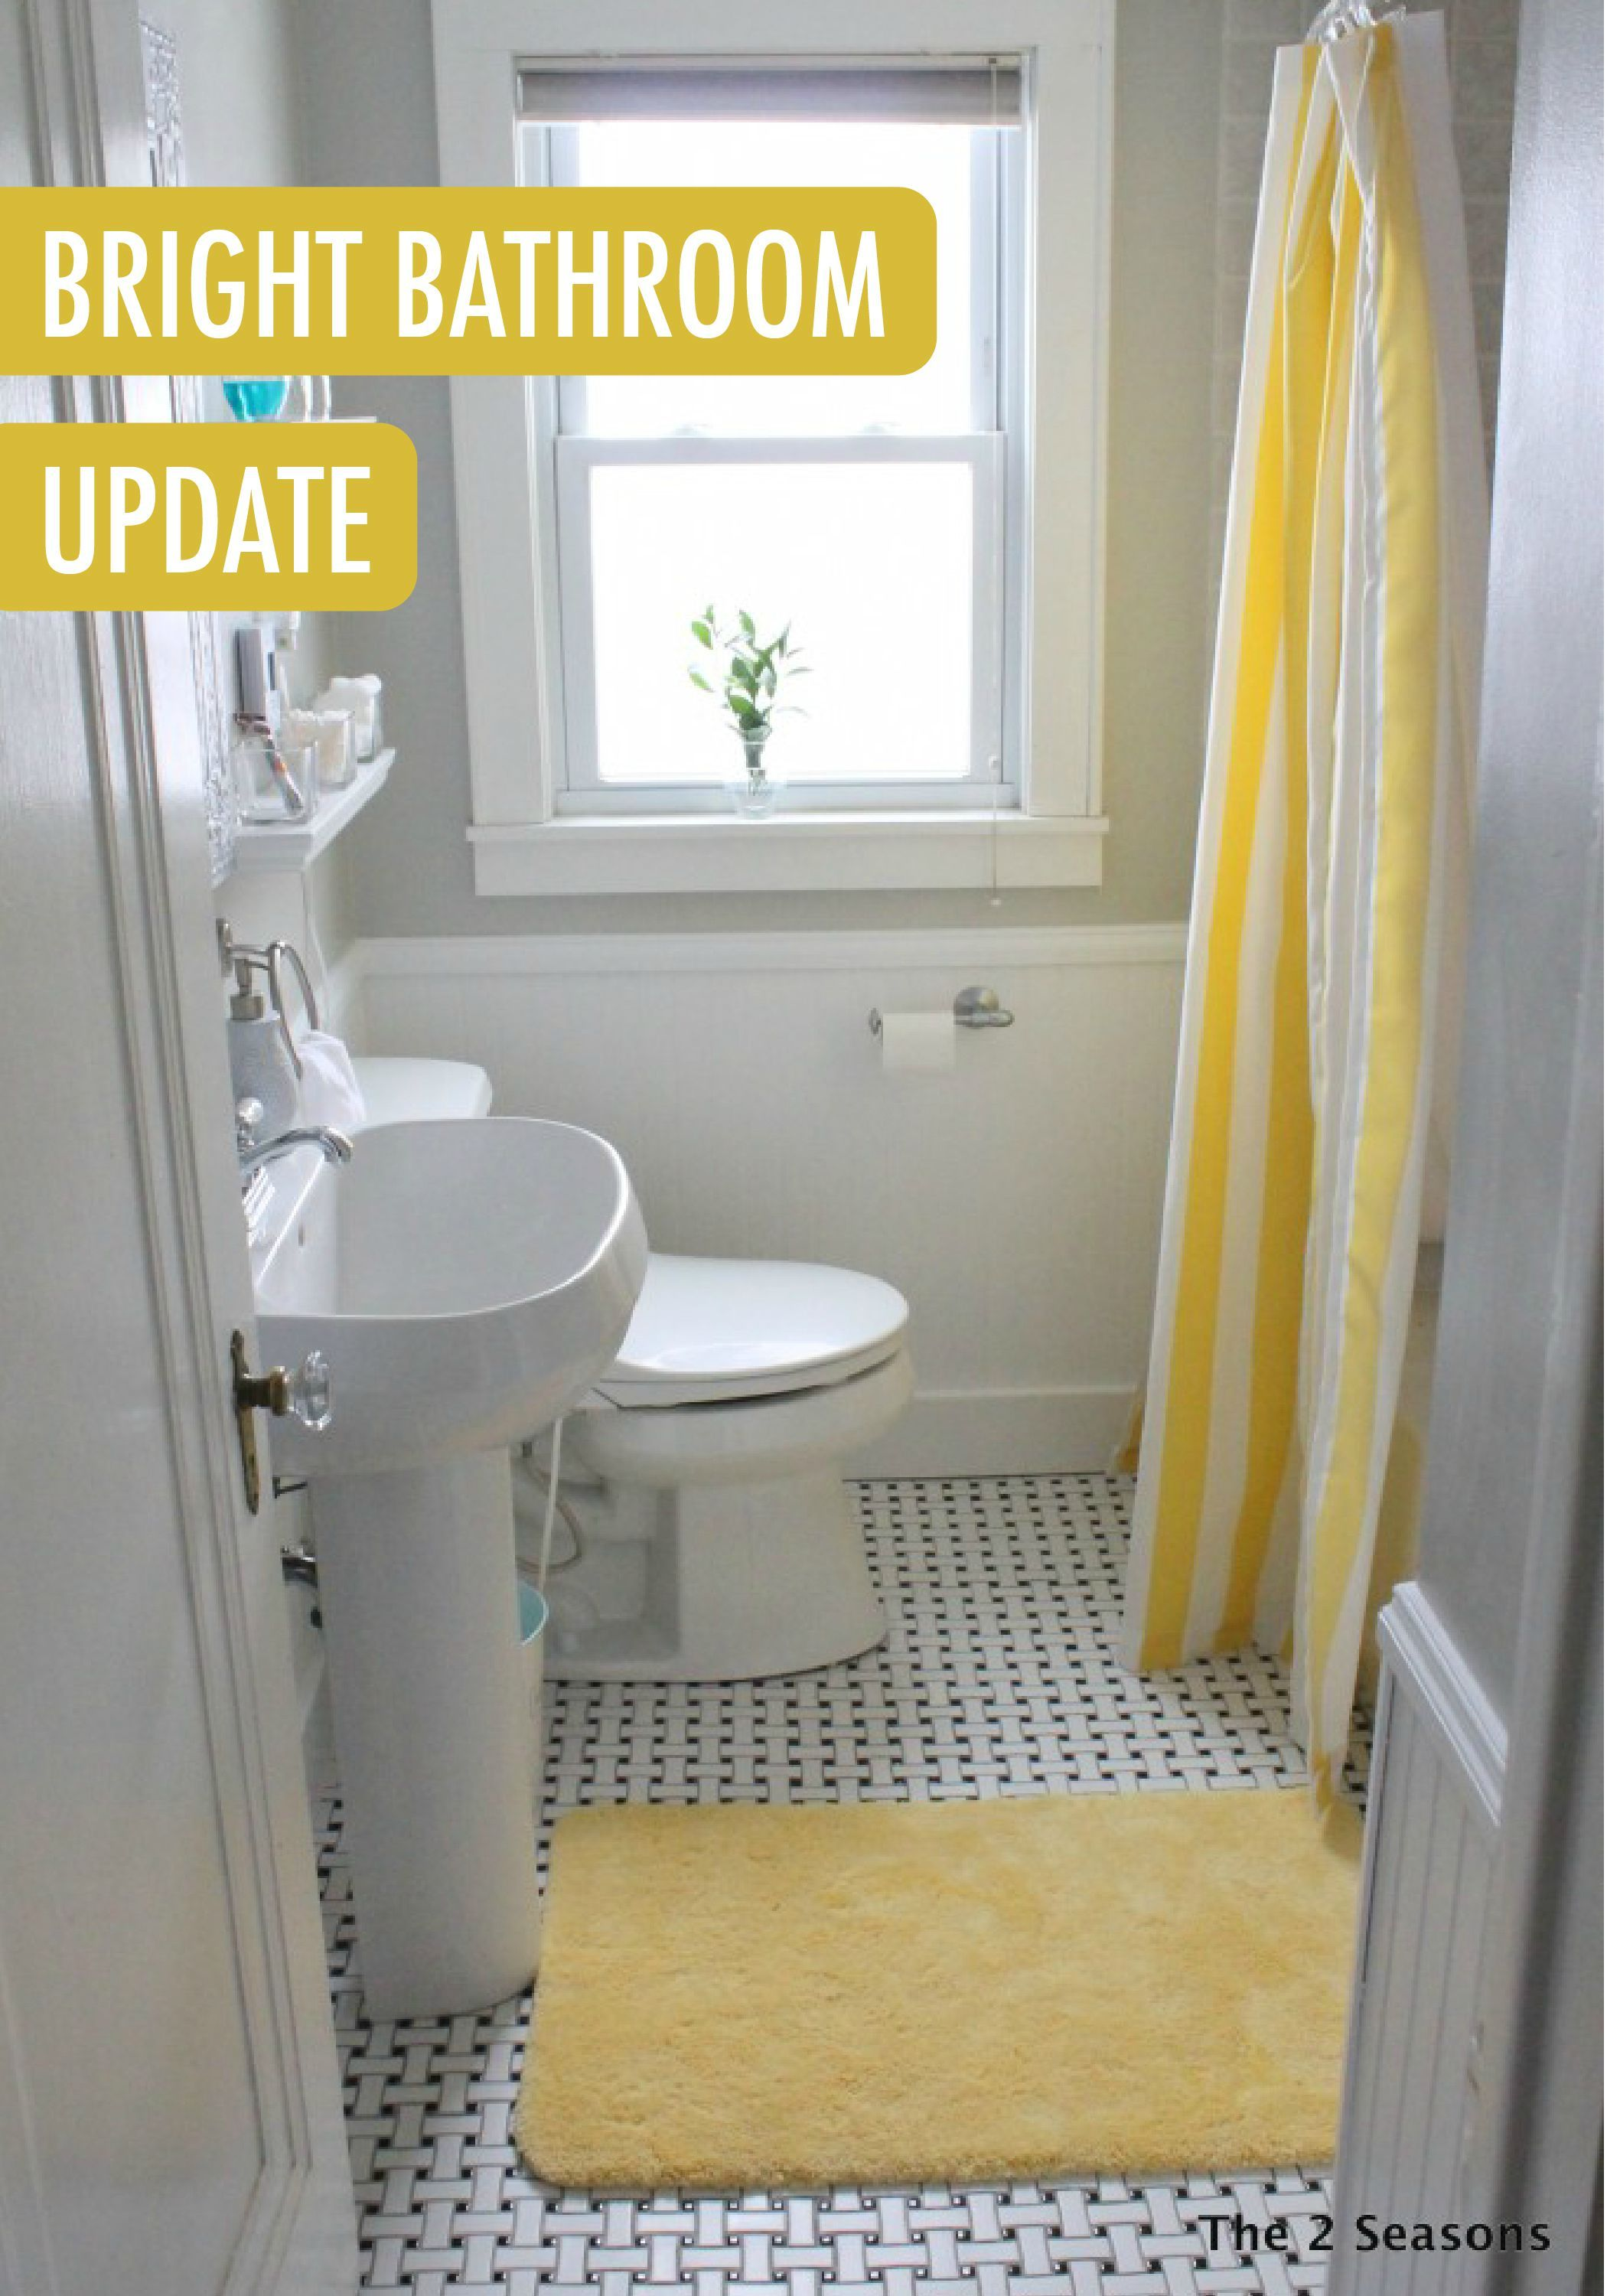 Refresh Your Bathroom With A Muchneeded Remodel With New Tiling - Yellow and gray bath mat for bathroom decorating ideas